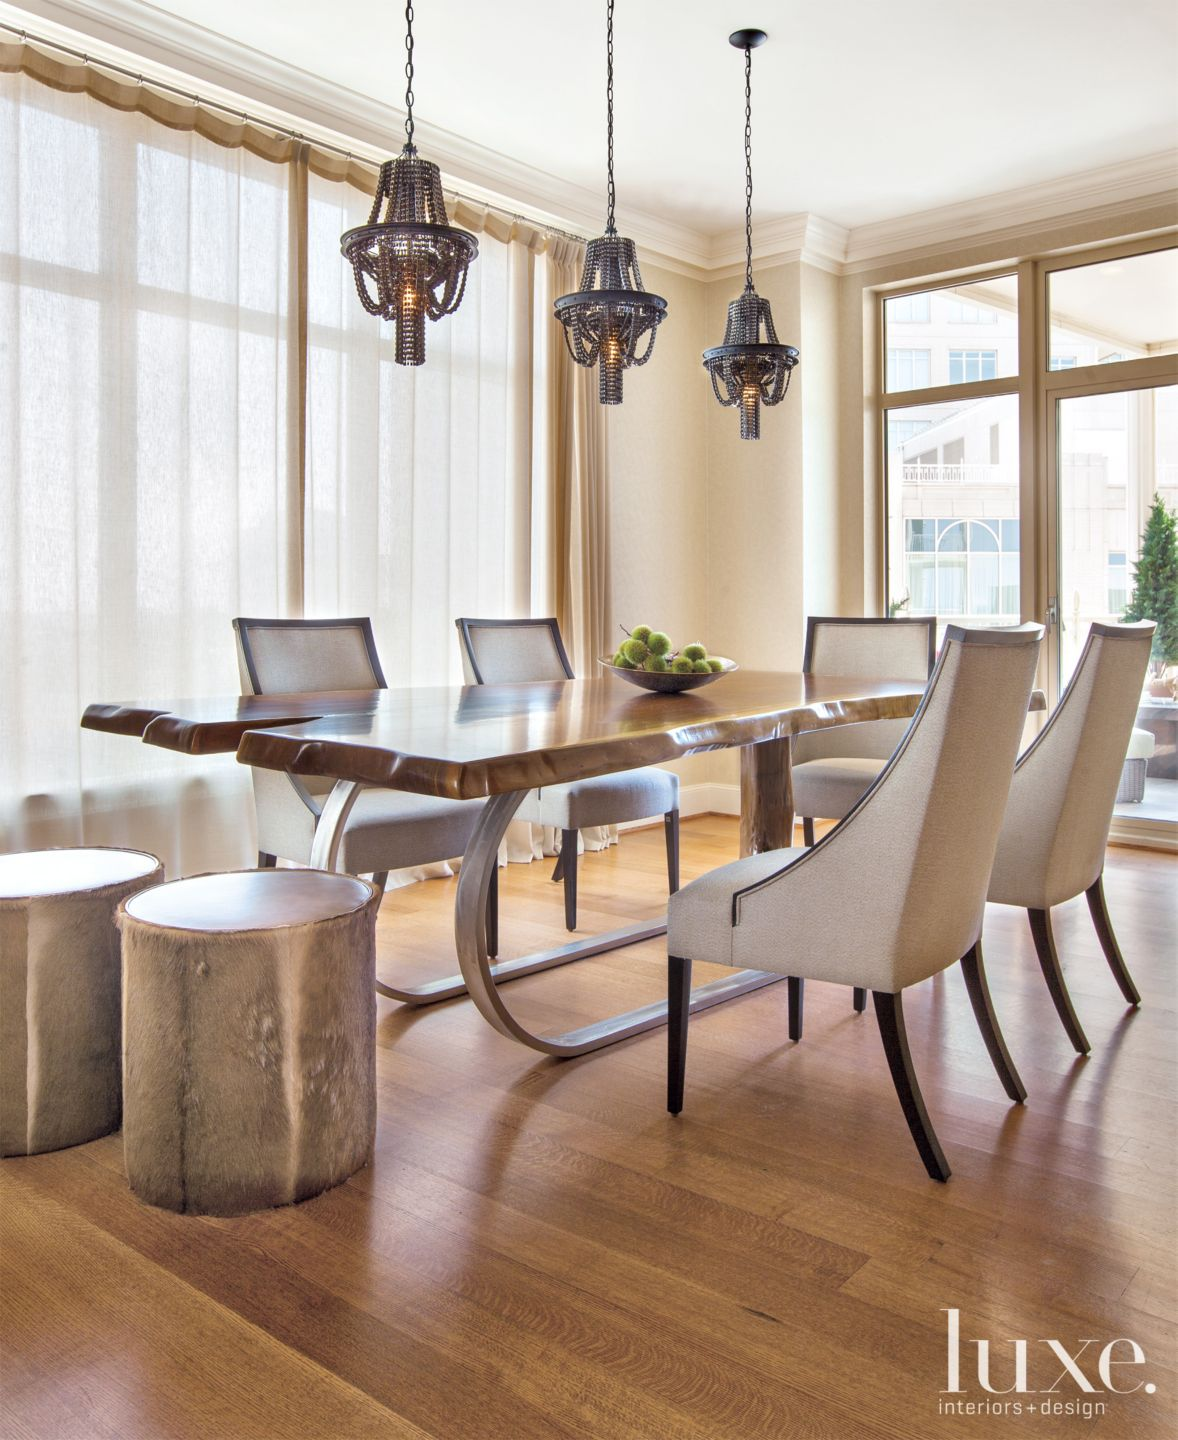 Modern Neutral Dining Room with Bicycle Part Pendants